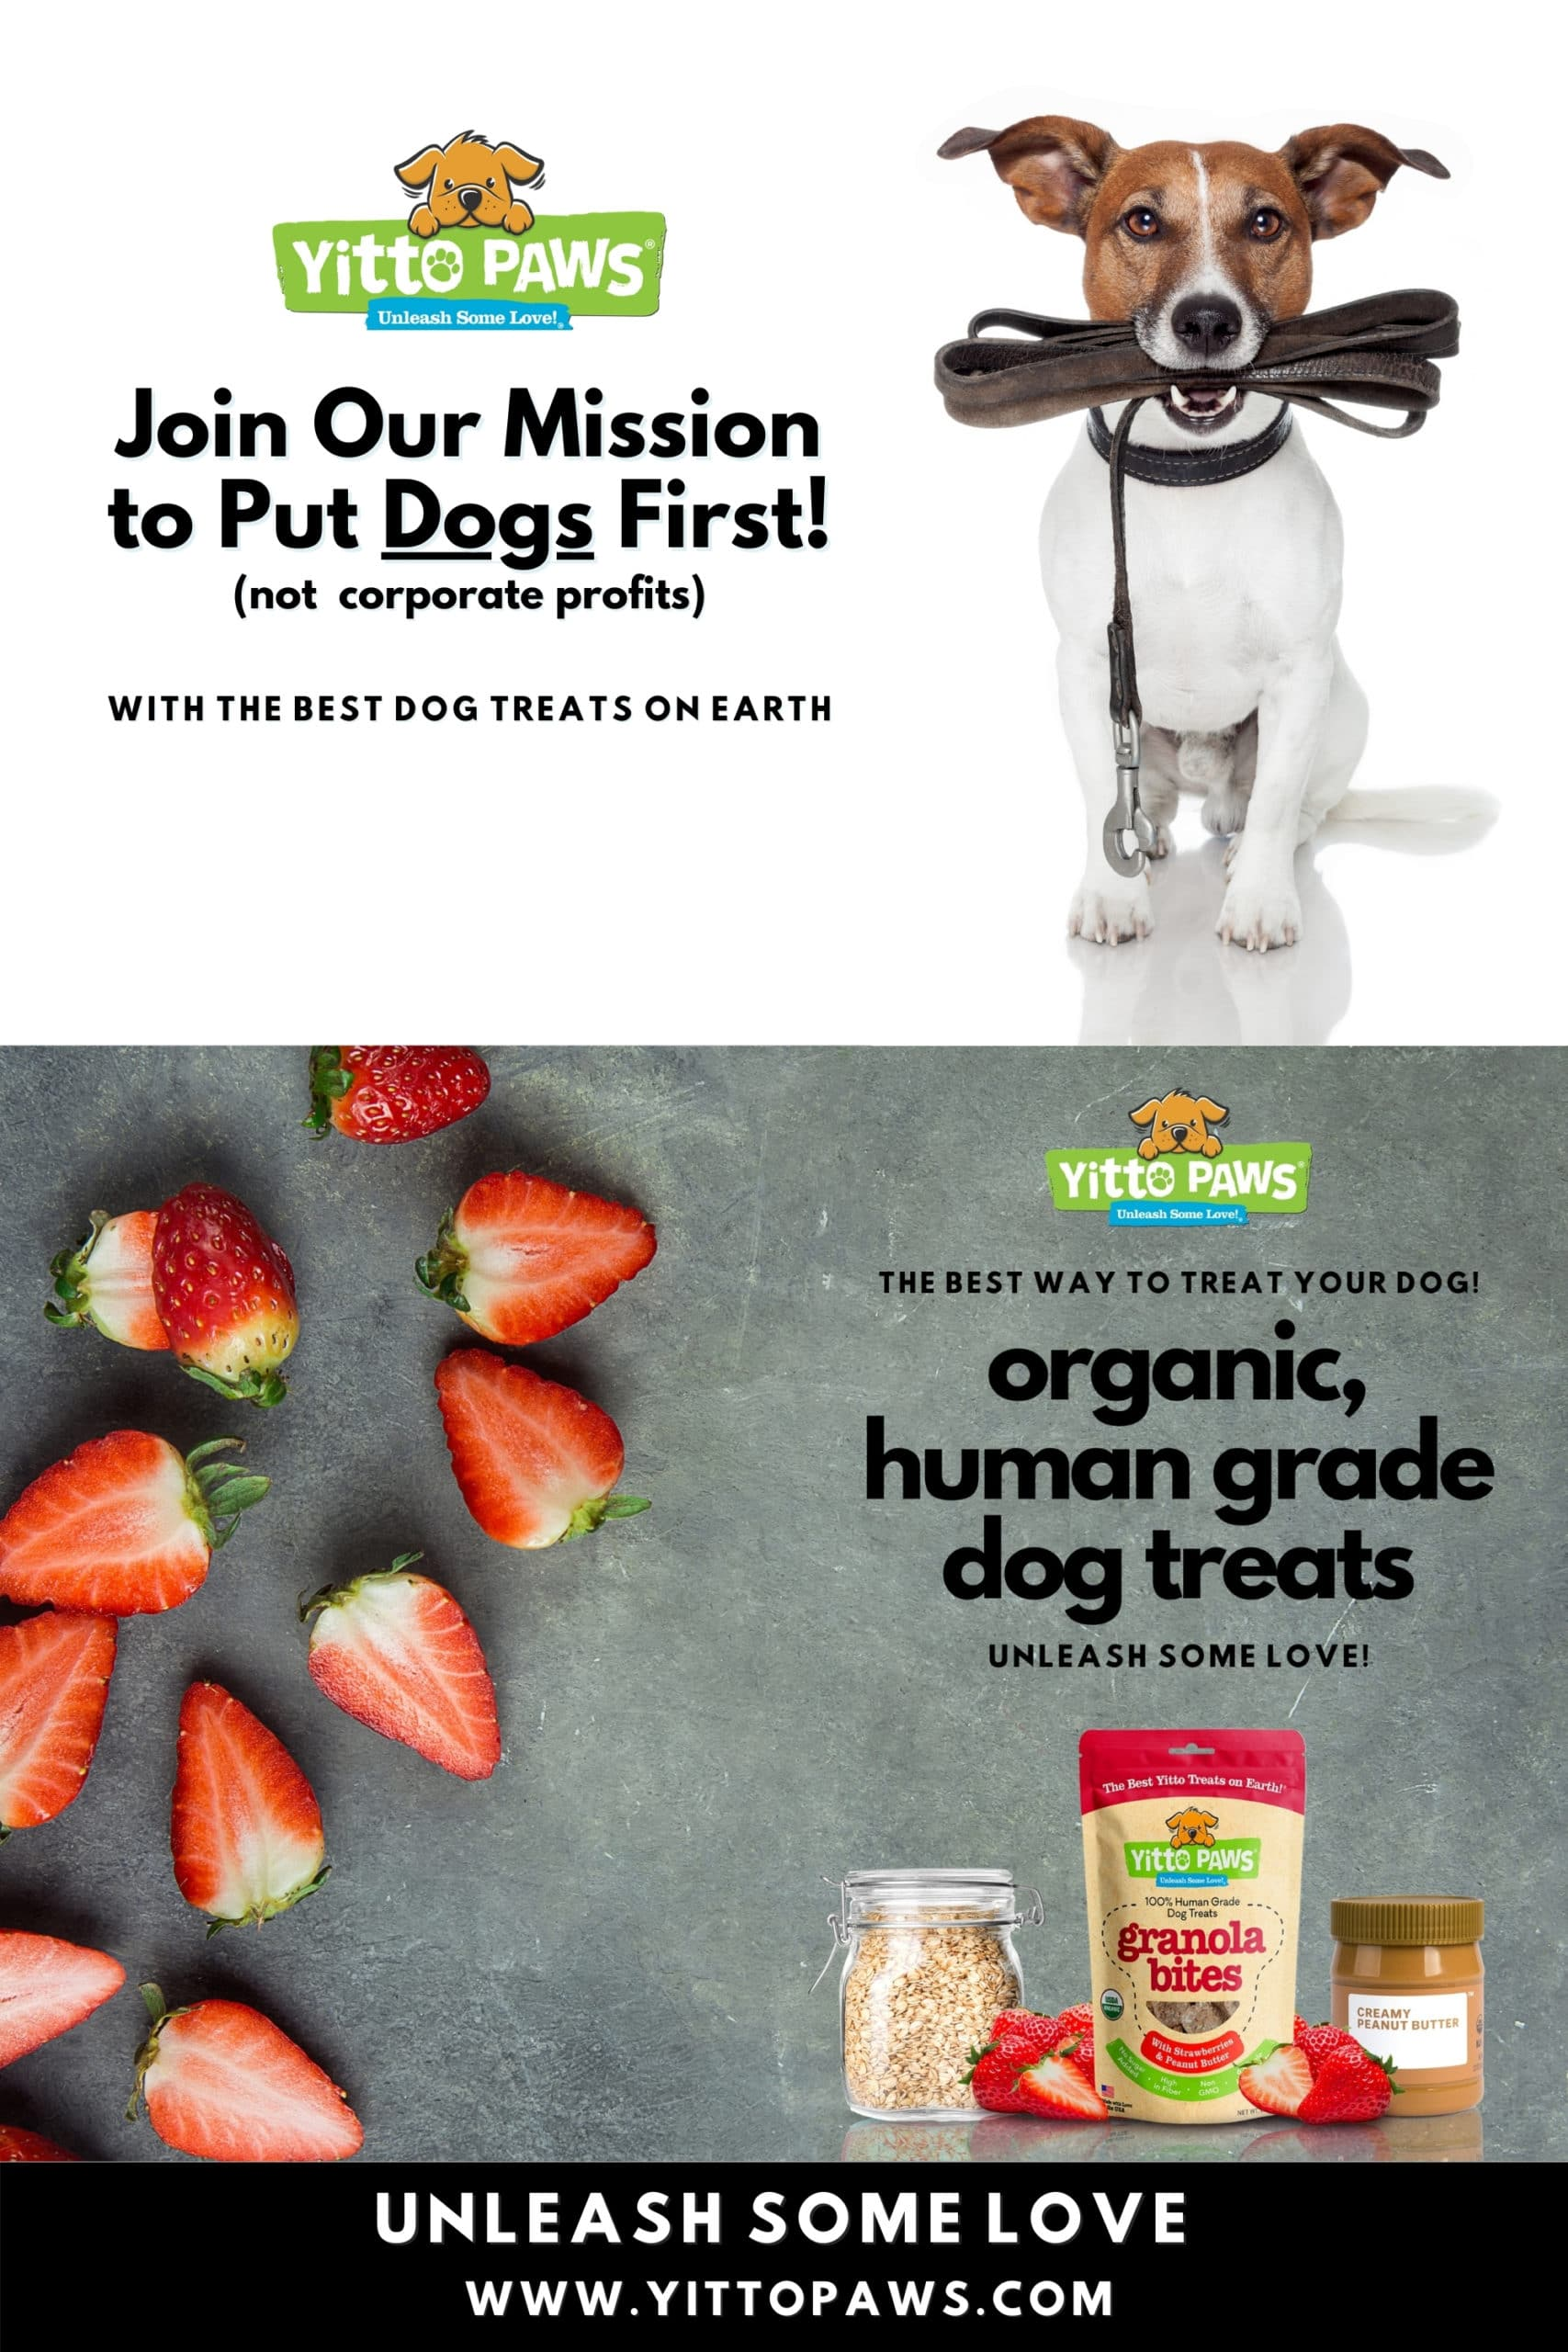 Join Our Mission at Yitto Paws to Put Dogs First!